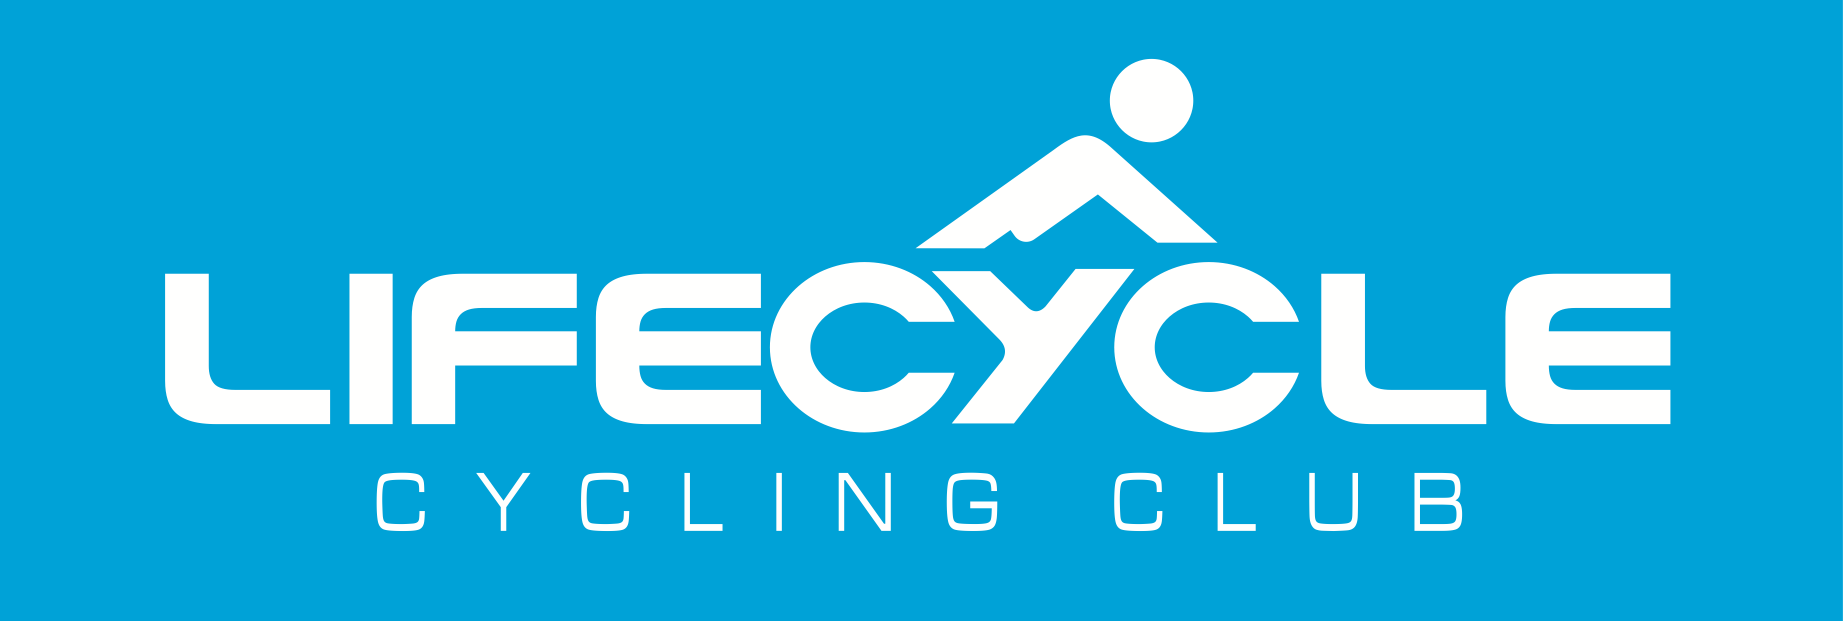 Lifecycle Cycling Club